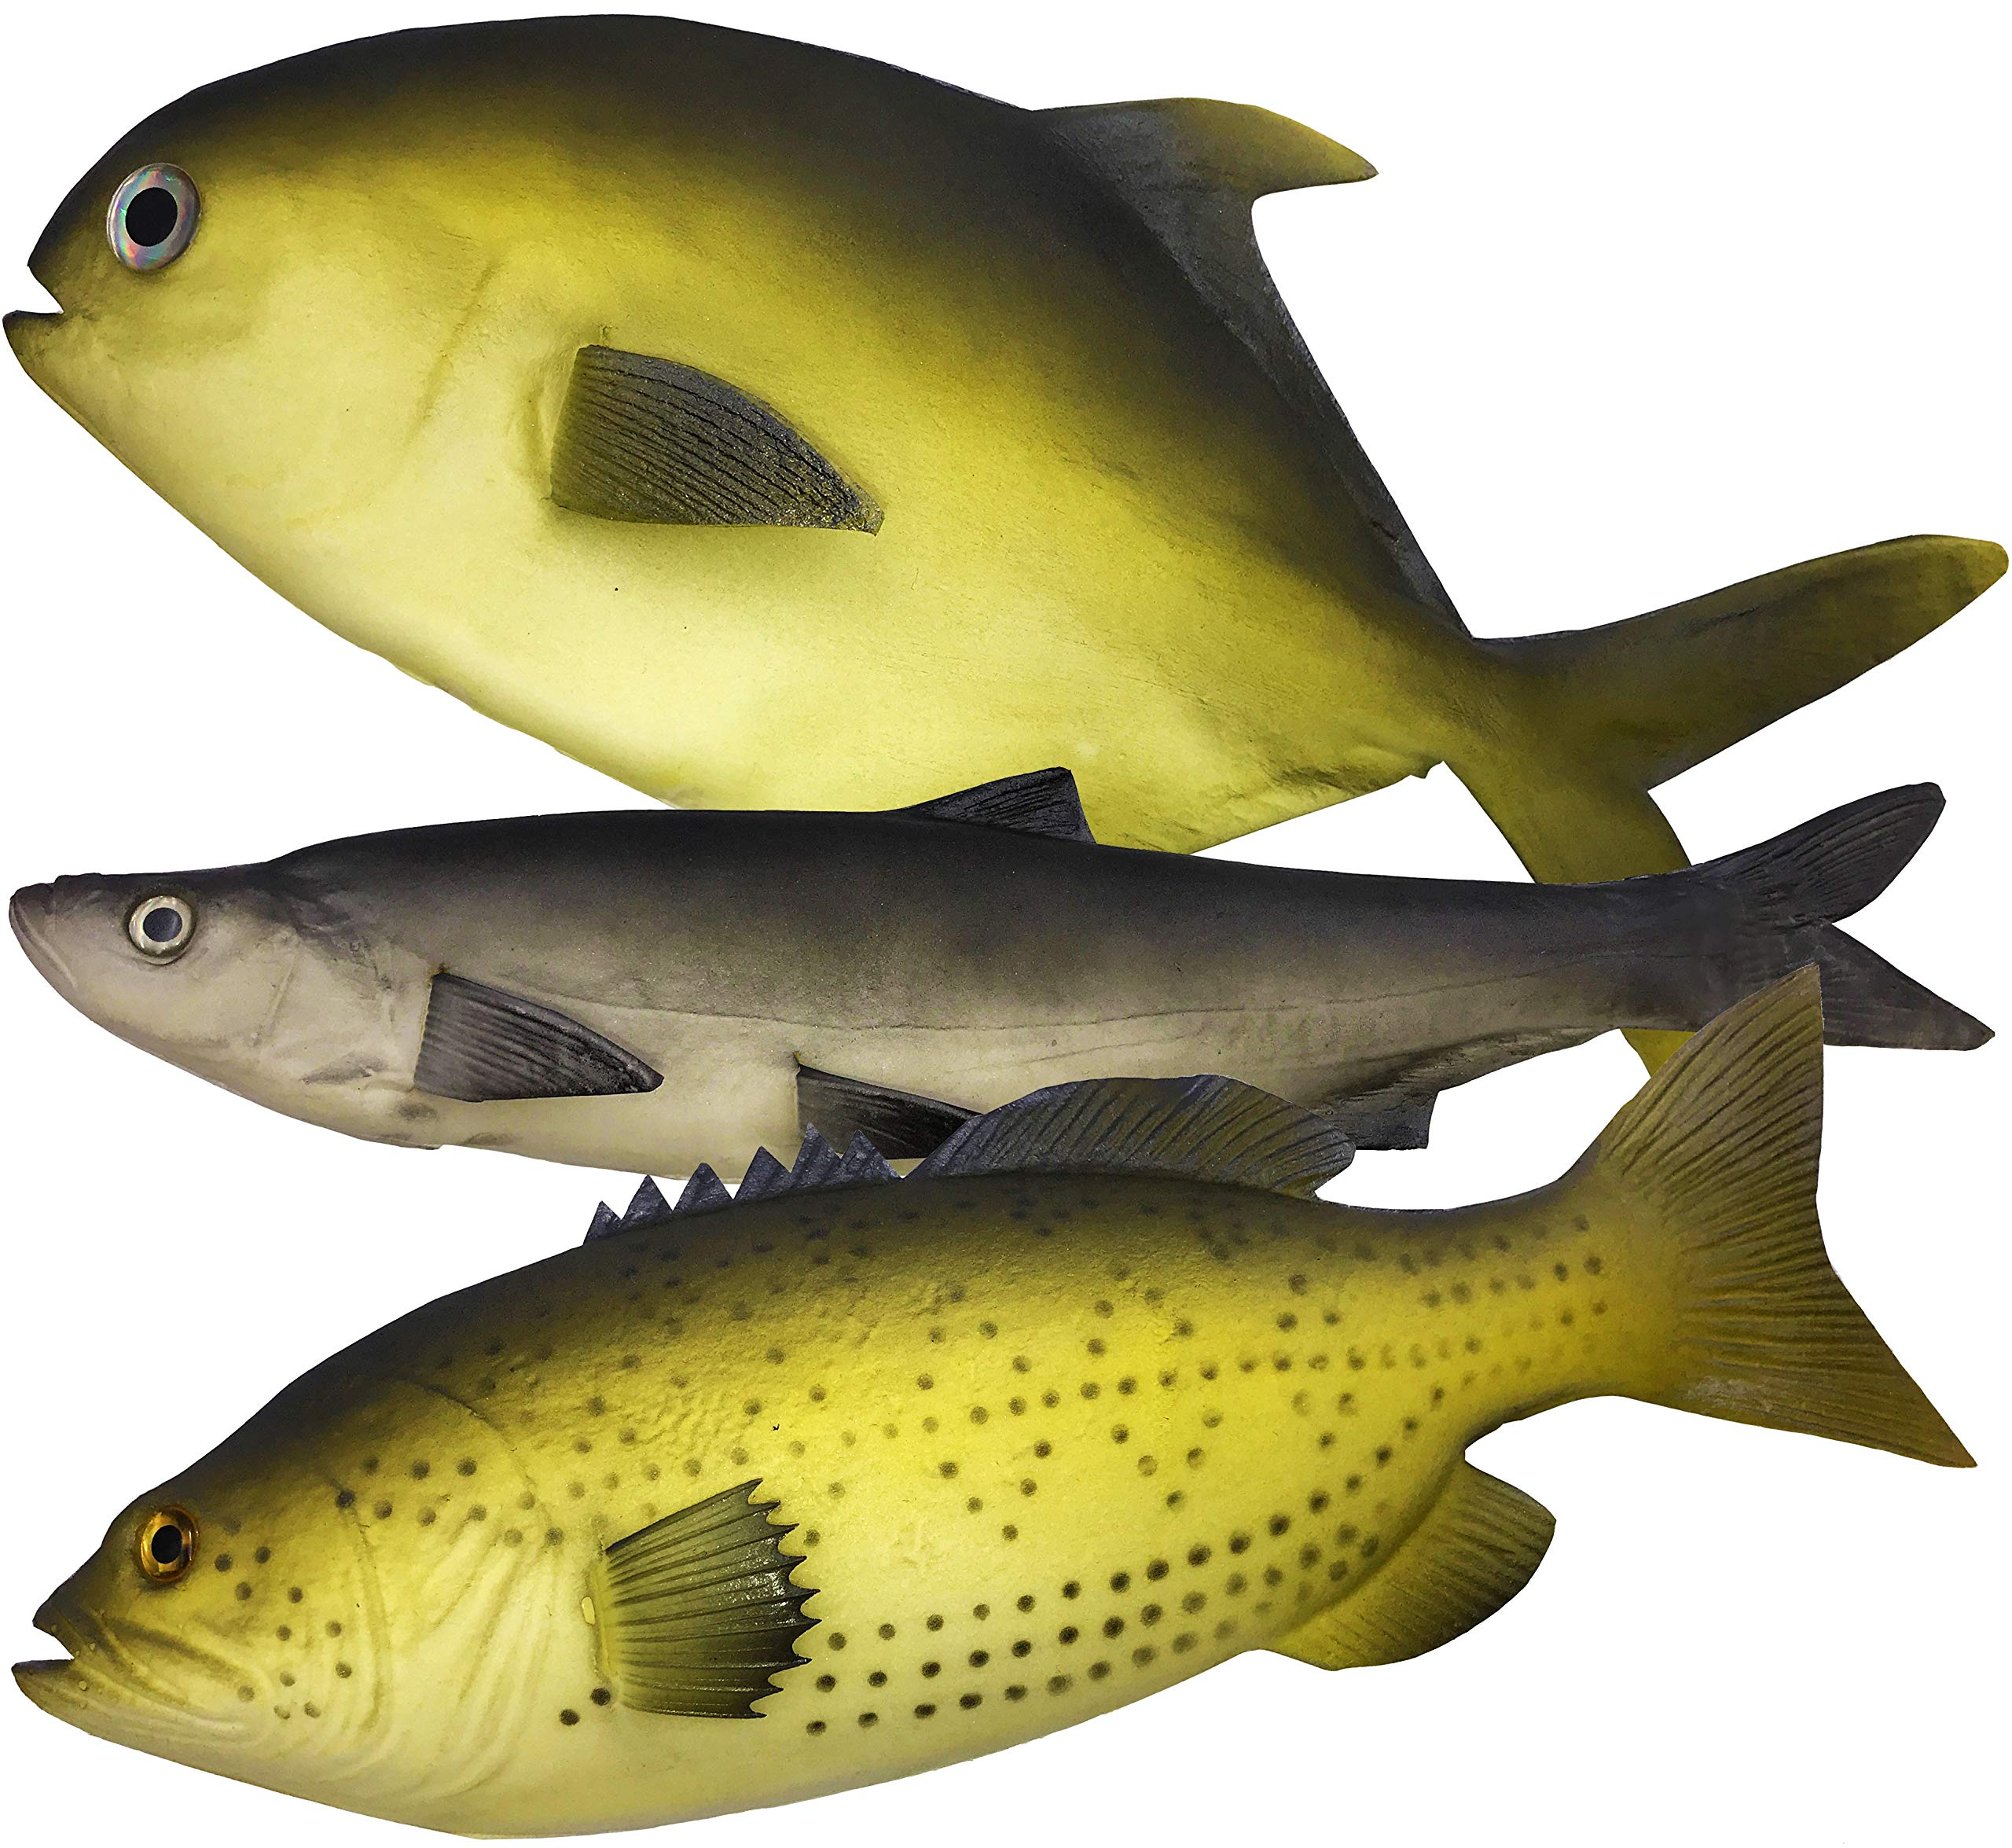 3 Large Artificial Fish 2018- 12 to 16 in - Premium Quality - Realistic Fake Fish - Best Looking Real Fish Perfect for Food Display or Food Photography Prop - Flexible Foam Material by Dasksha